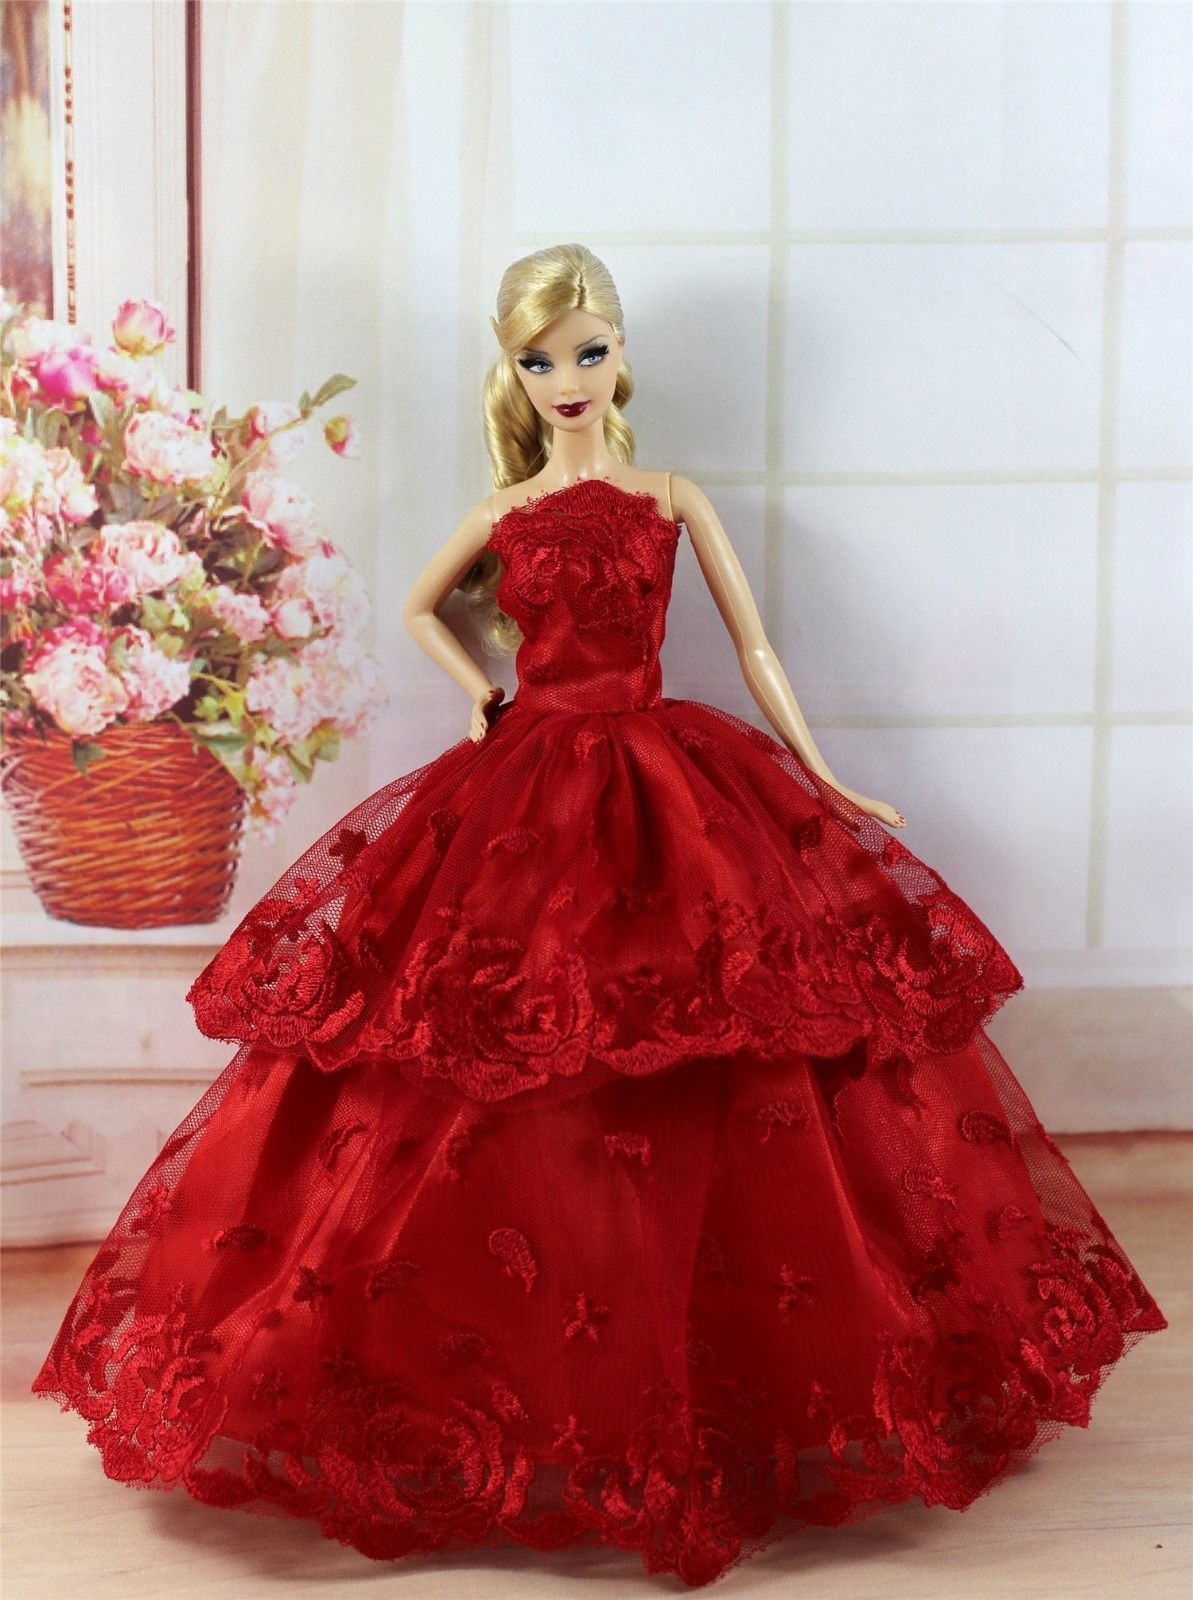 Barbie Doll Red Asian  Mini Dress Clothes Party Costume